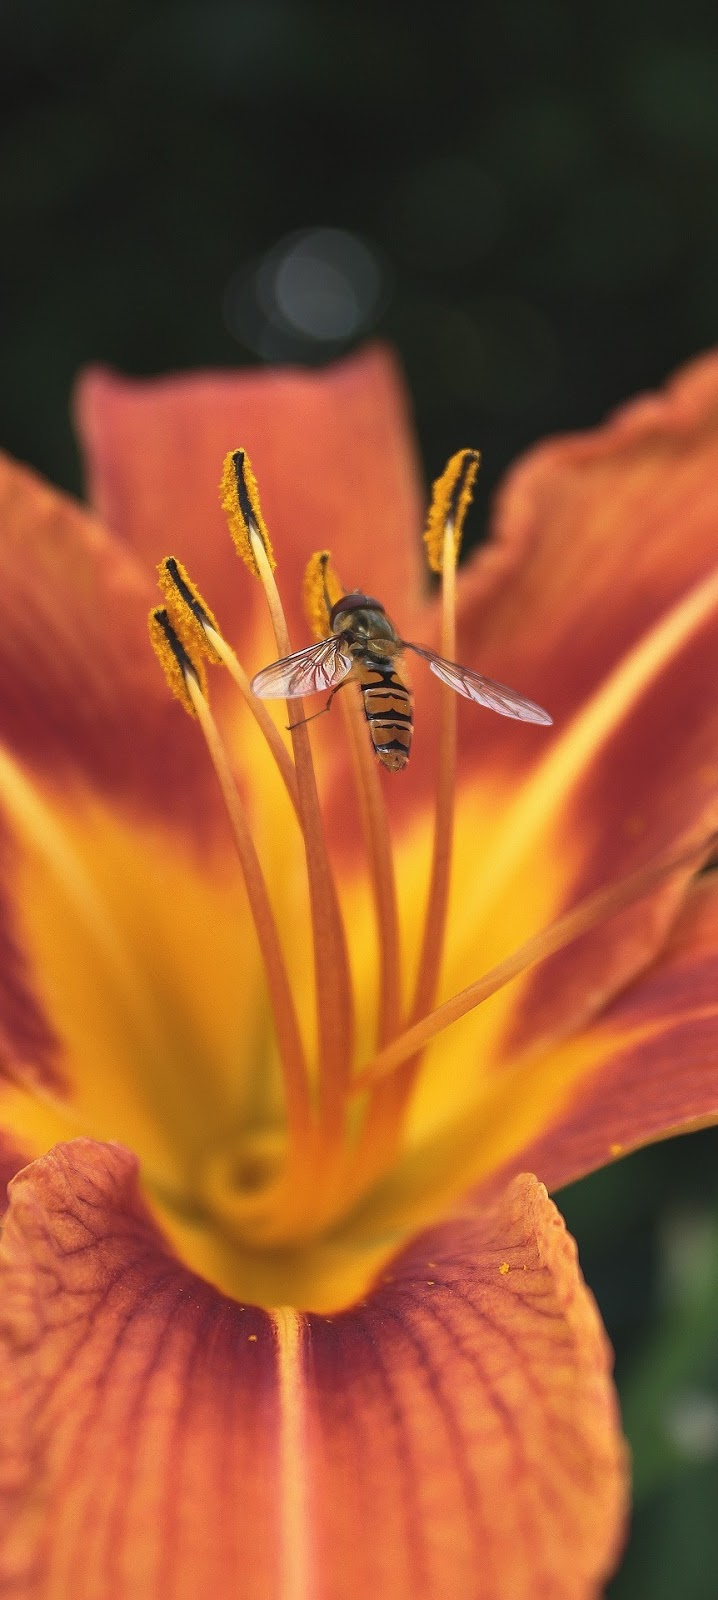 An insect collecting nectar from a flower.